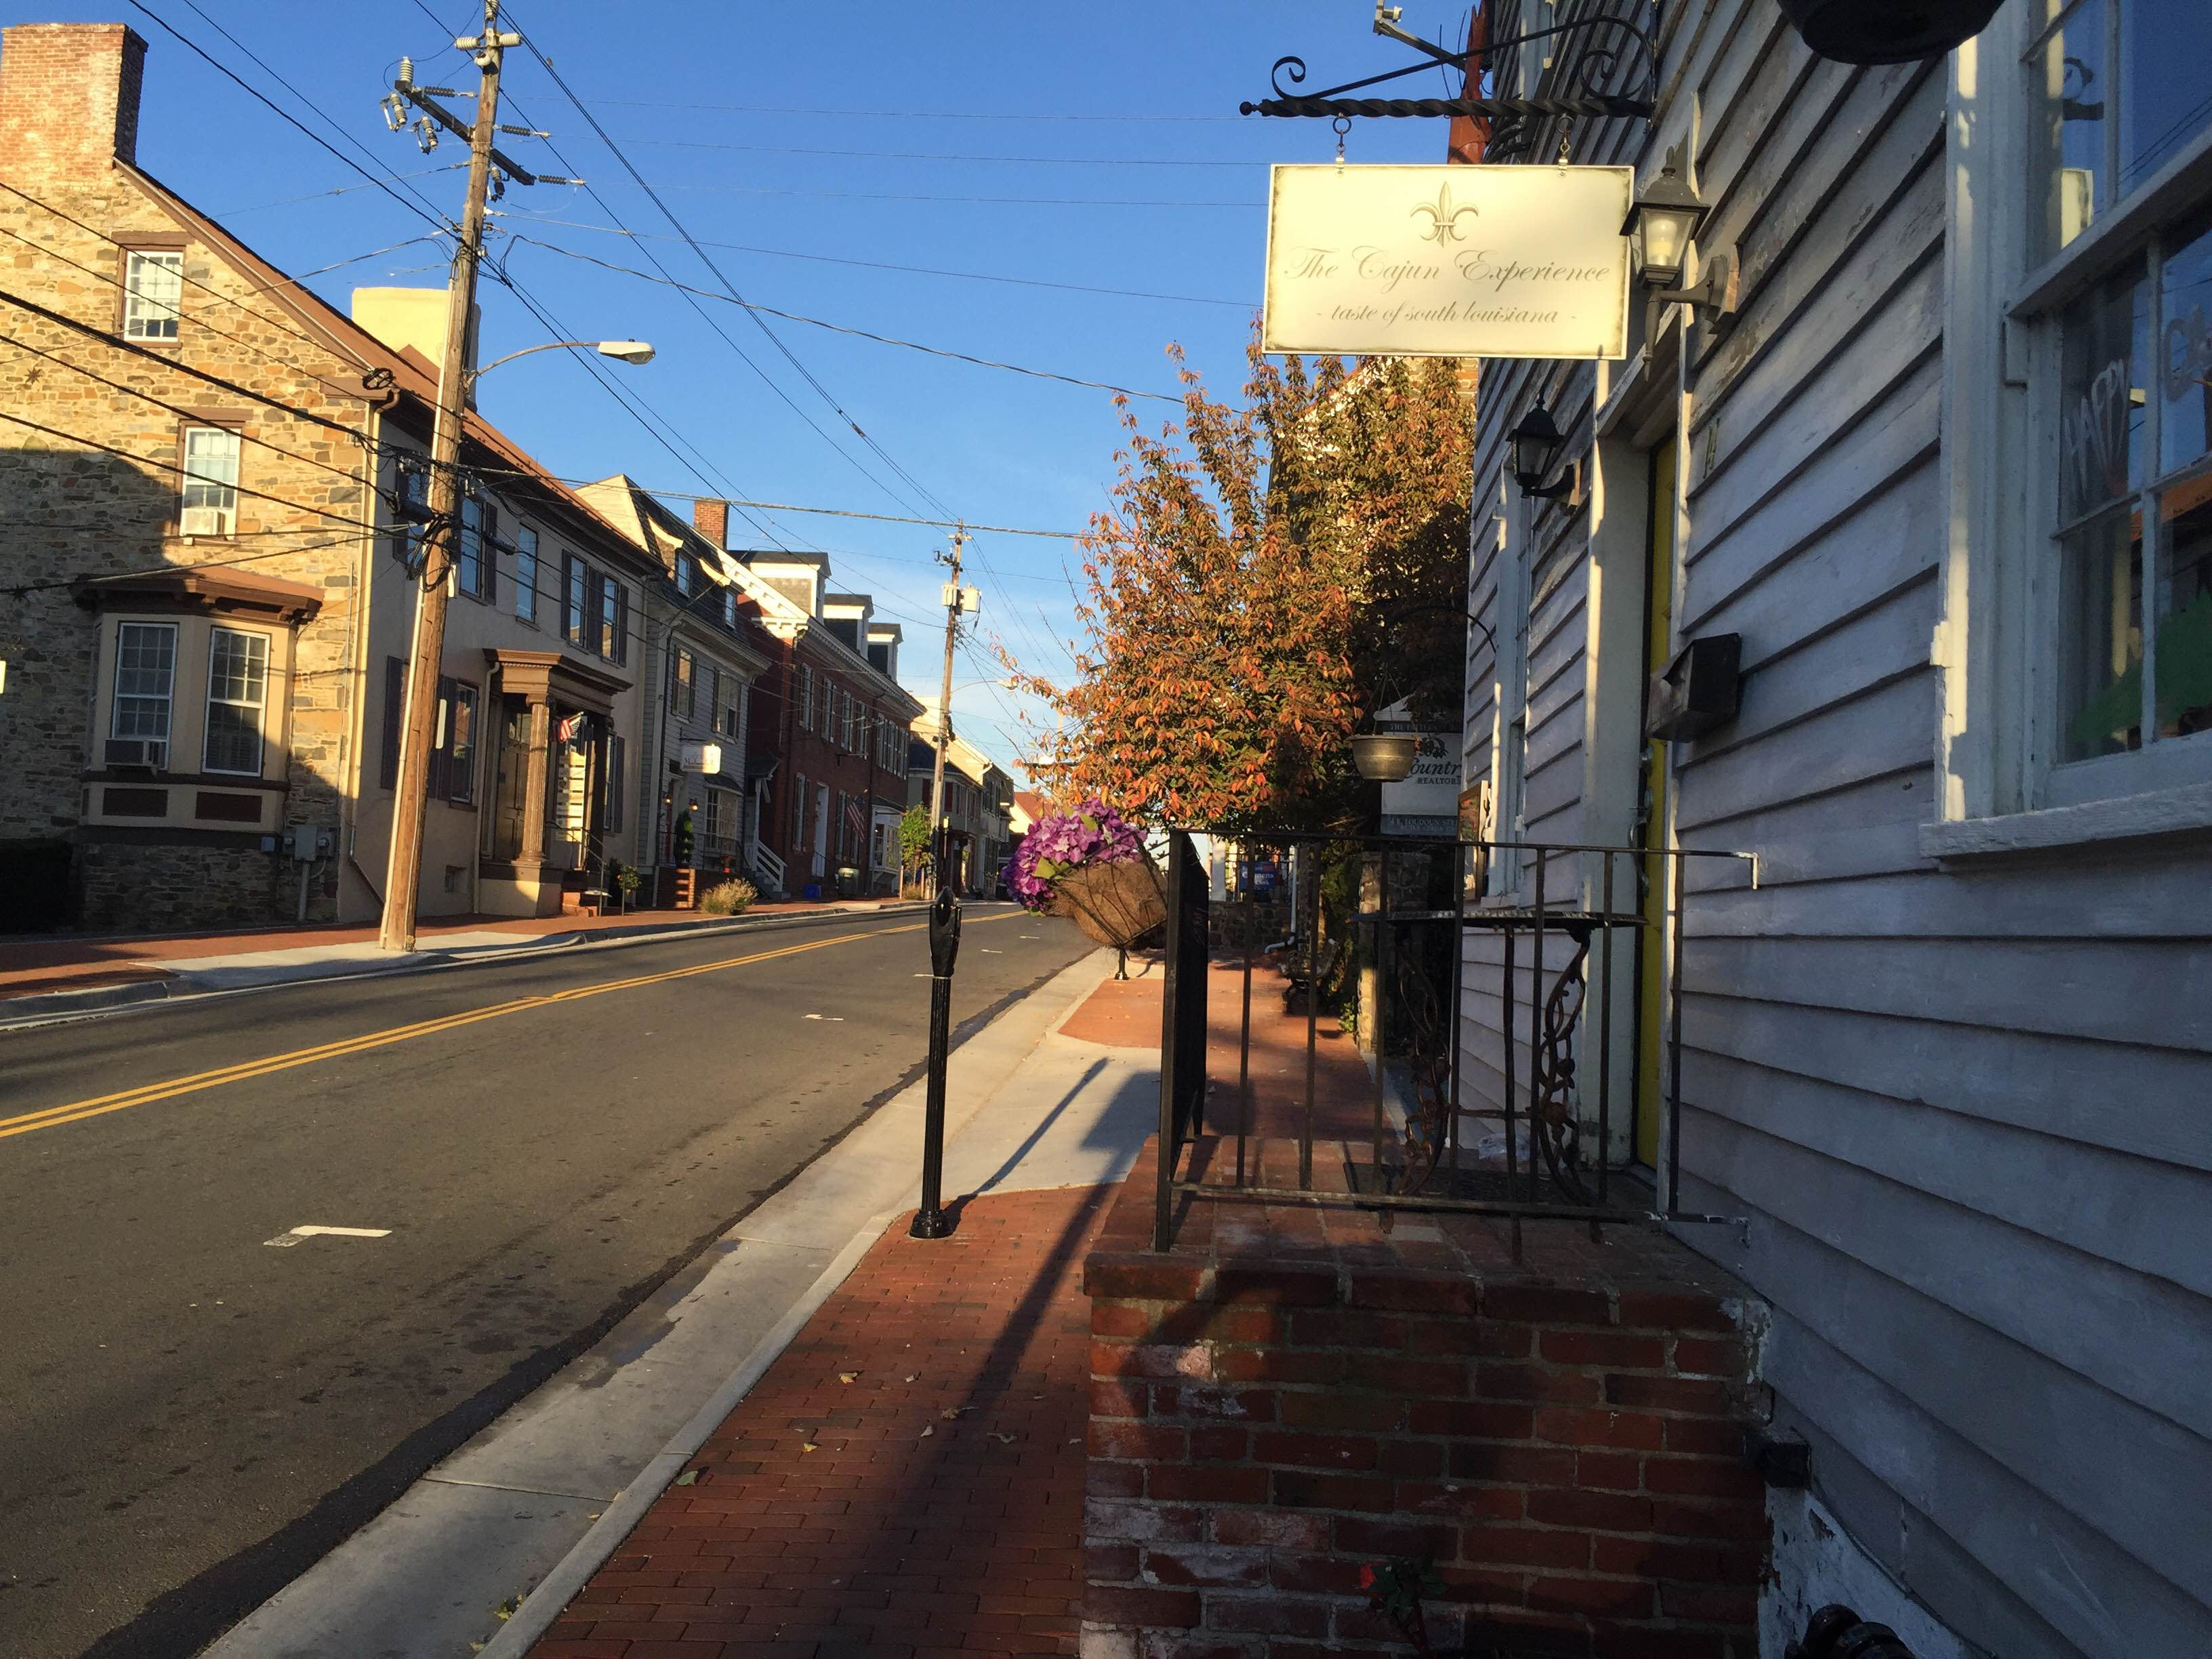 Downtown Leesburg restaurants look to local app to fight business downturn